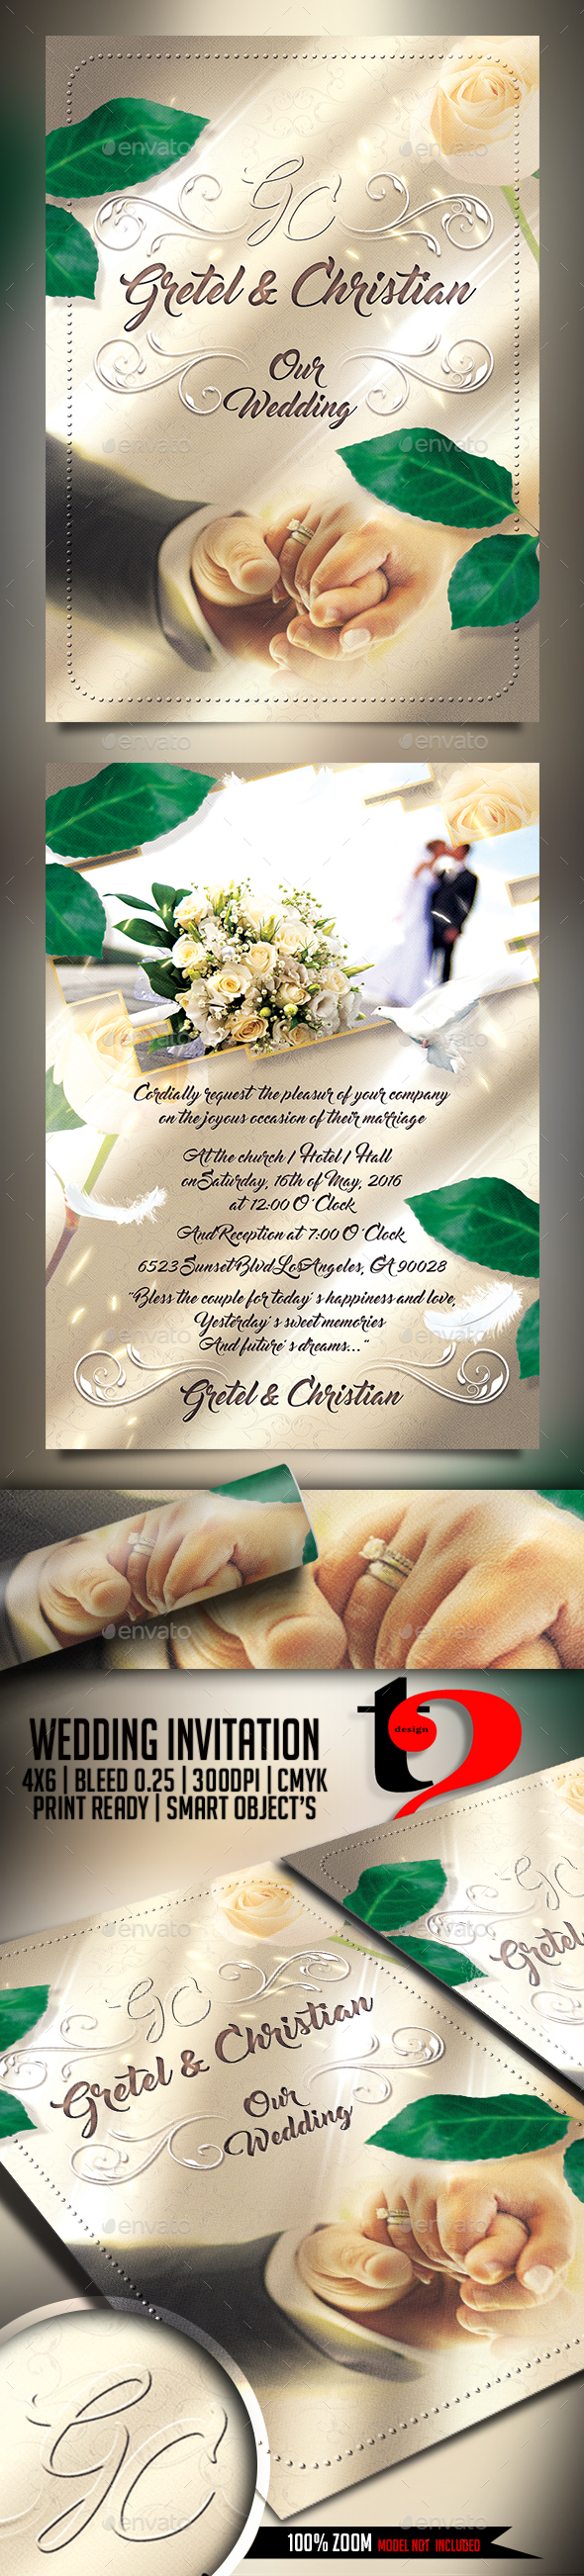 The Wedding Invitation Flyer - Template